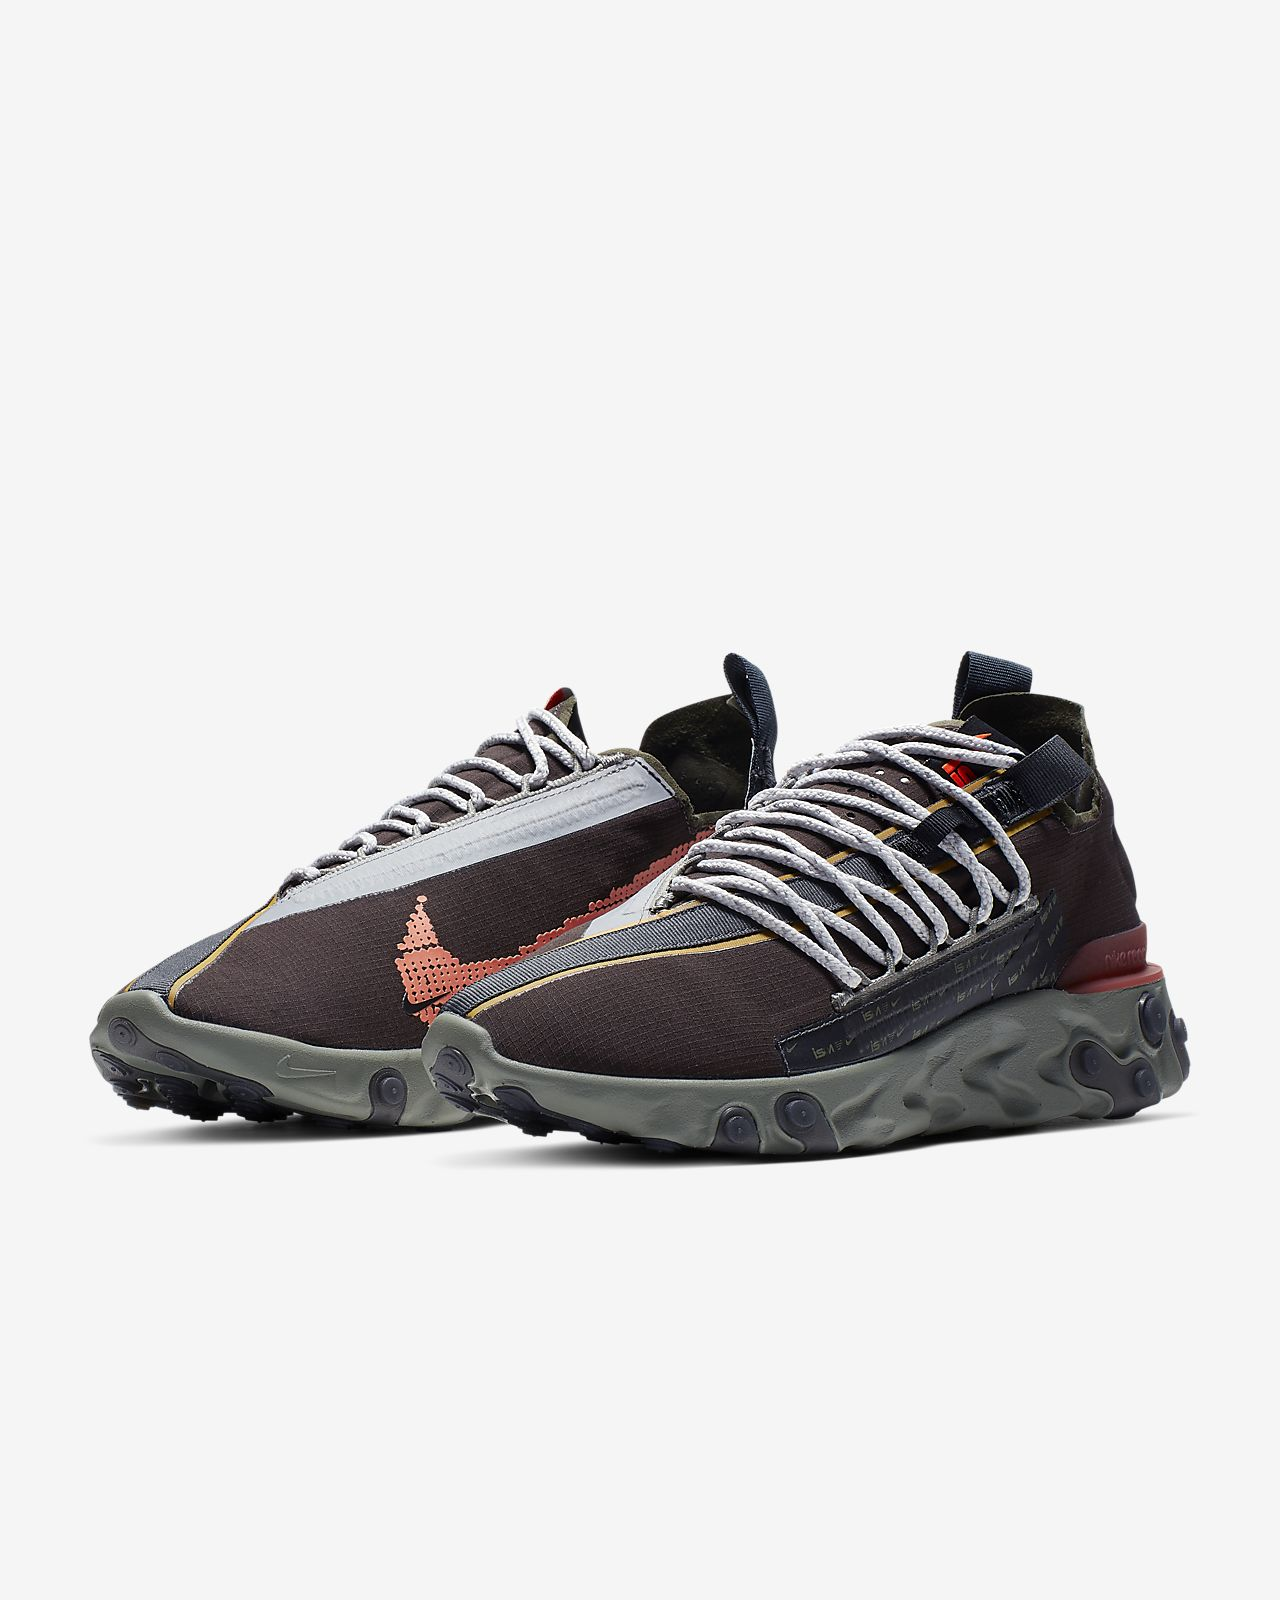 official store buy best official store Nike ISPA React WR Men's Shoe